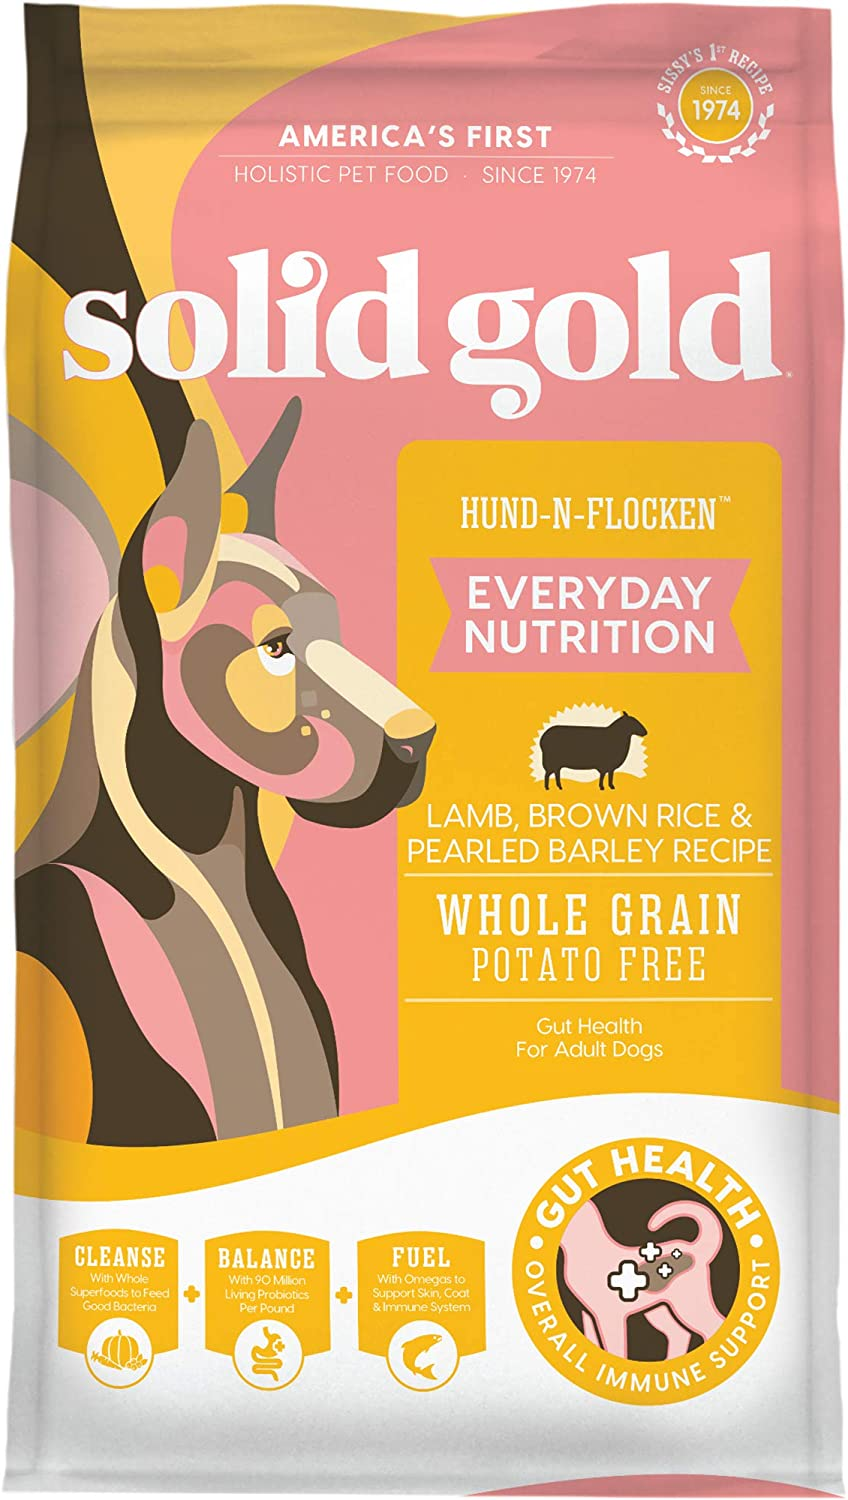 Solid Gold Hund-N-Flocken with Real Lamb, Brown Rice & Barley - Whole Grain - Holistic Adult Dog Food with Probiotic Support - 4lb Bag